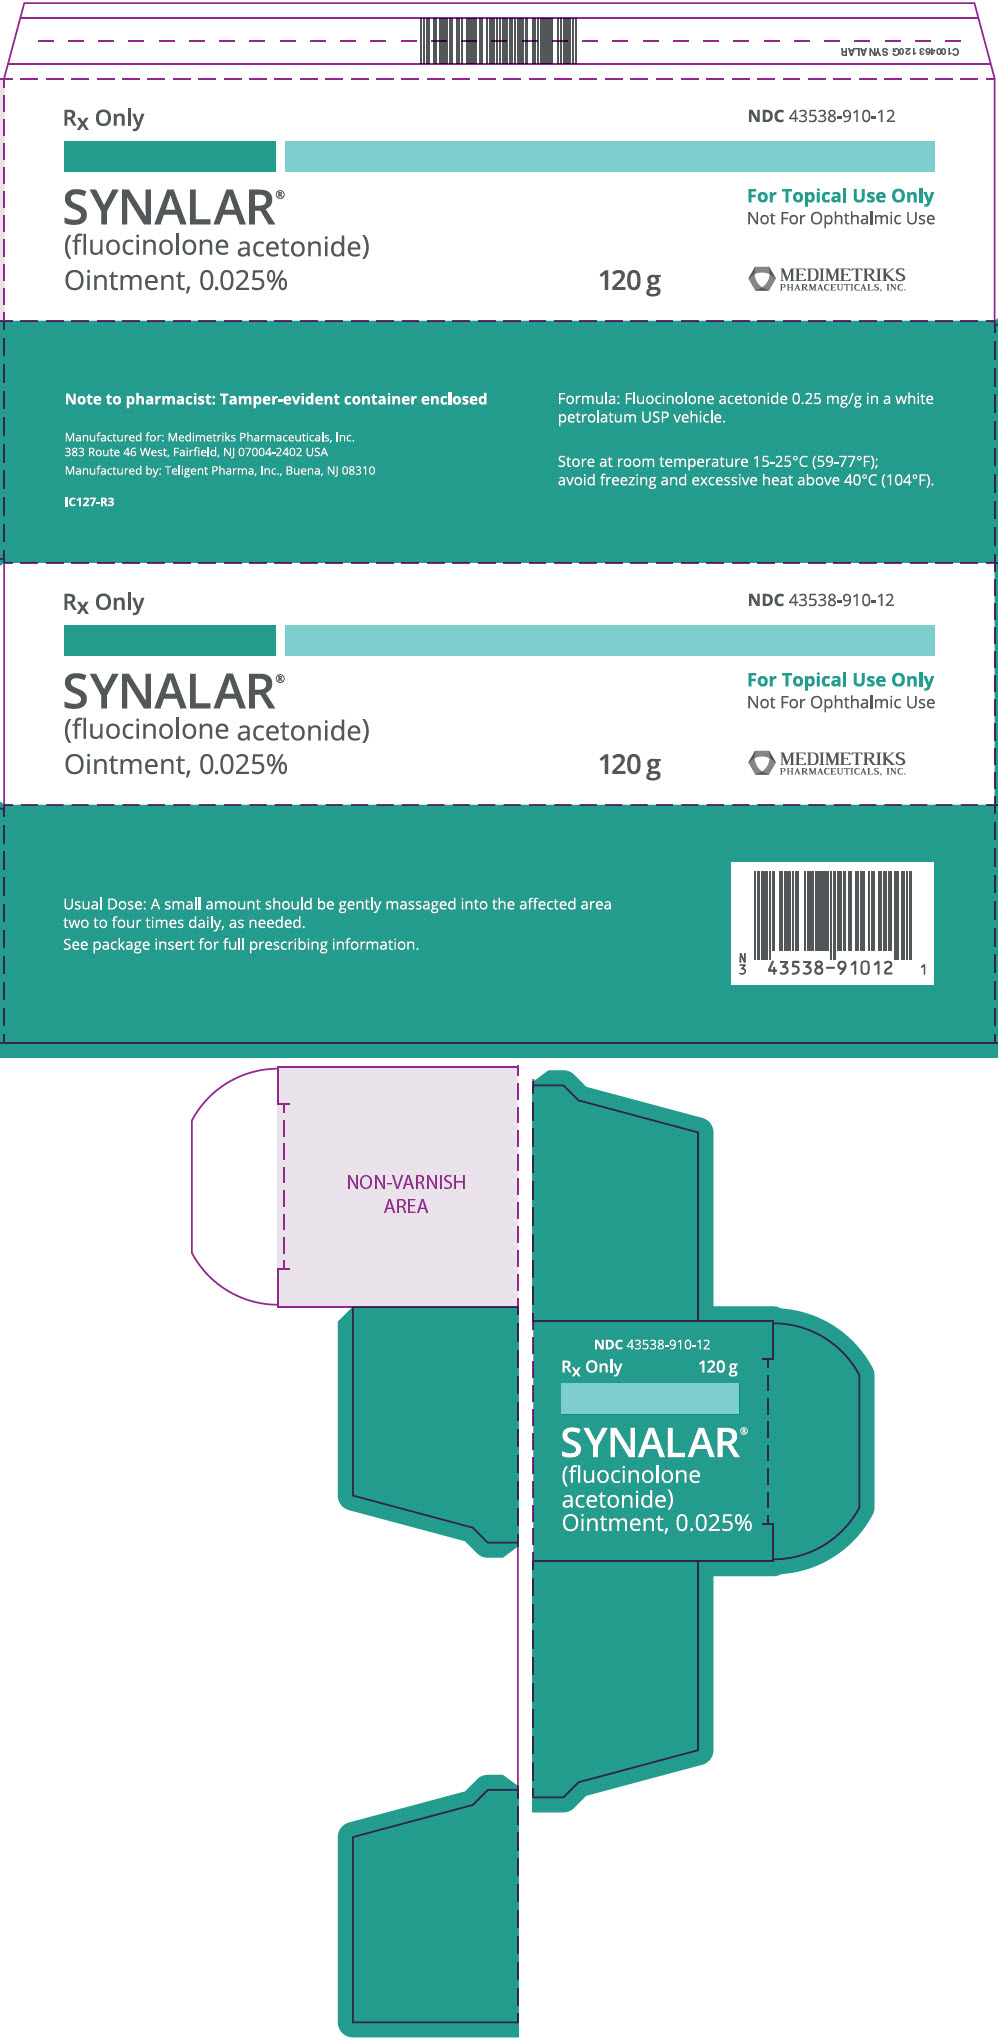 Synalar (Fluocinolone Acetonide) Ointment Synalar (Fluocinolone Acetonide ) Kit [Medimetriks Pharmaceuticals, Inc.]